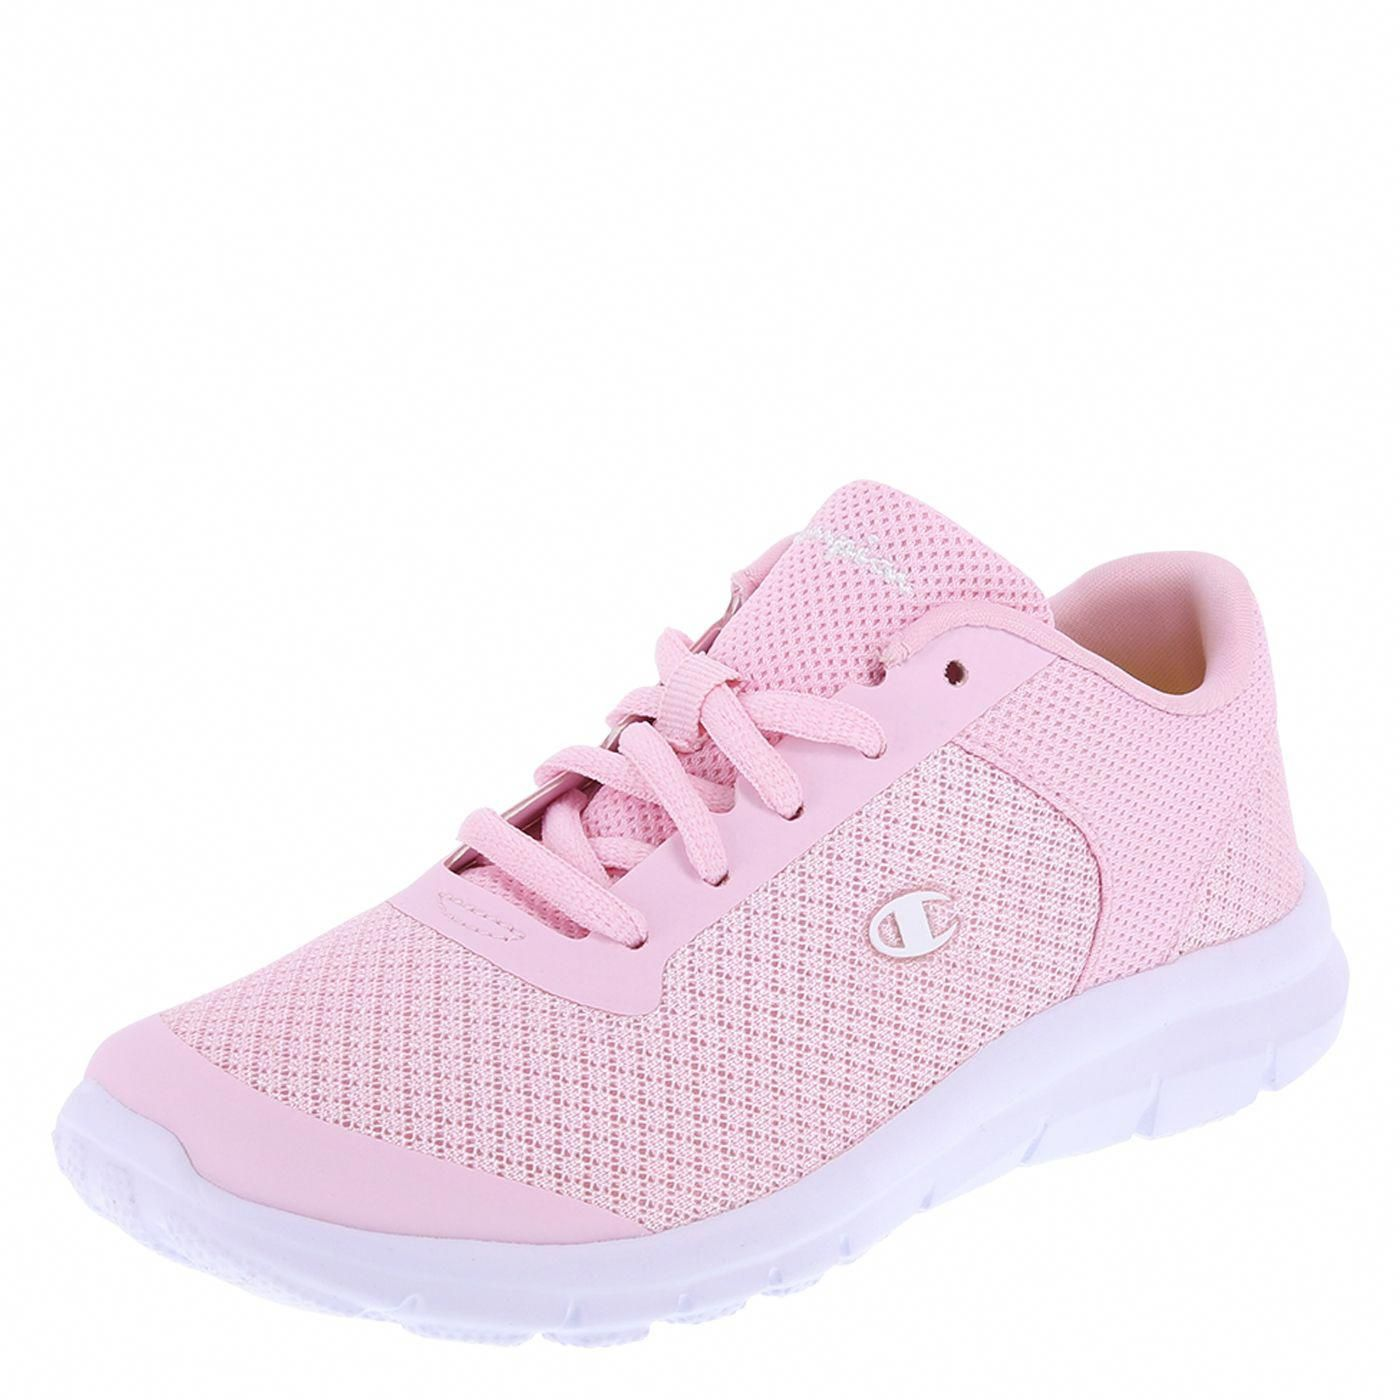 62864a2cad5 Champion Performance Girls Trainer Shoe